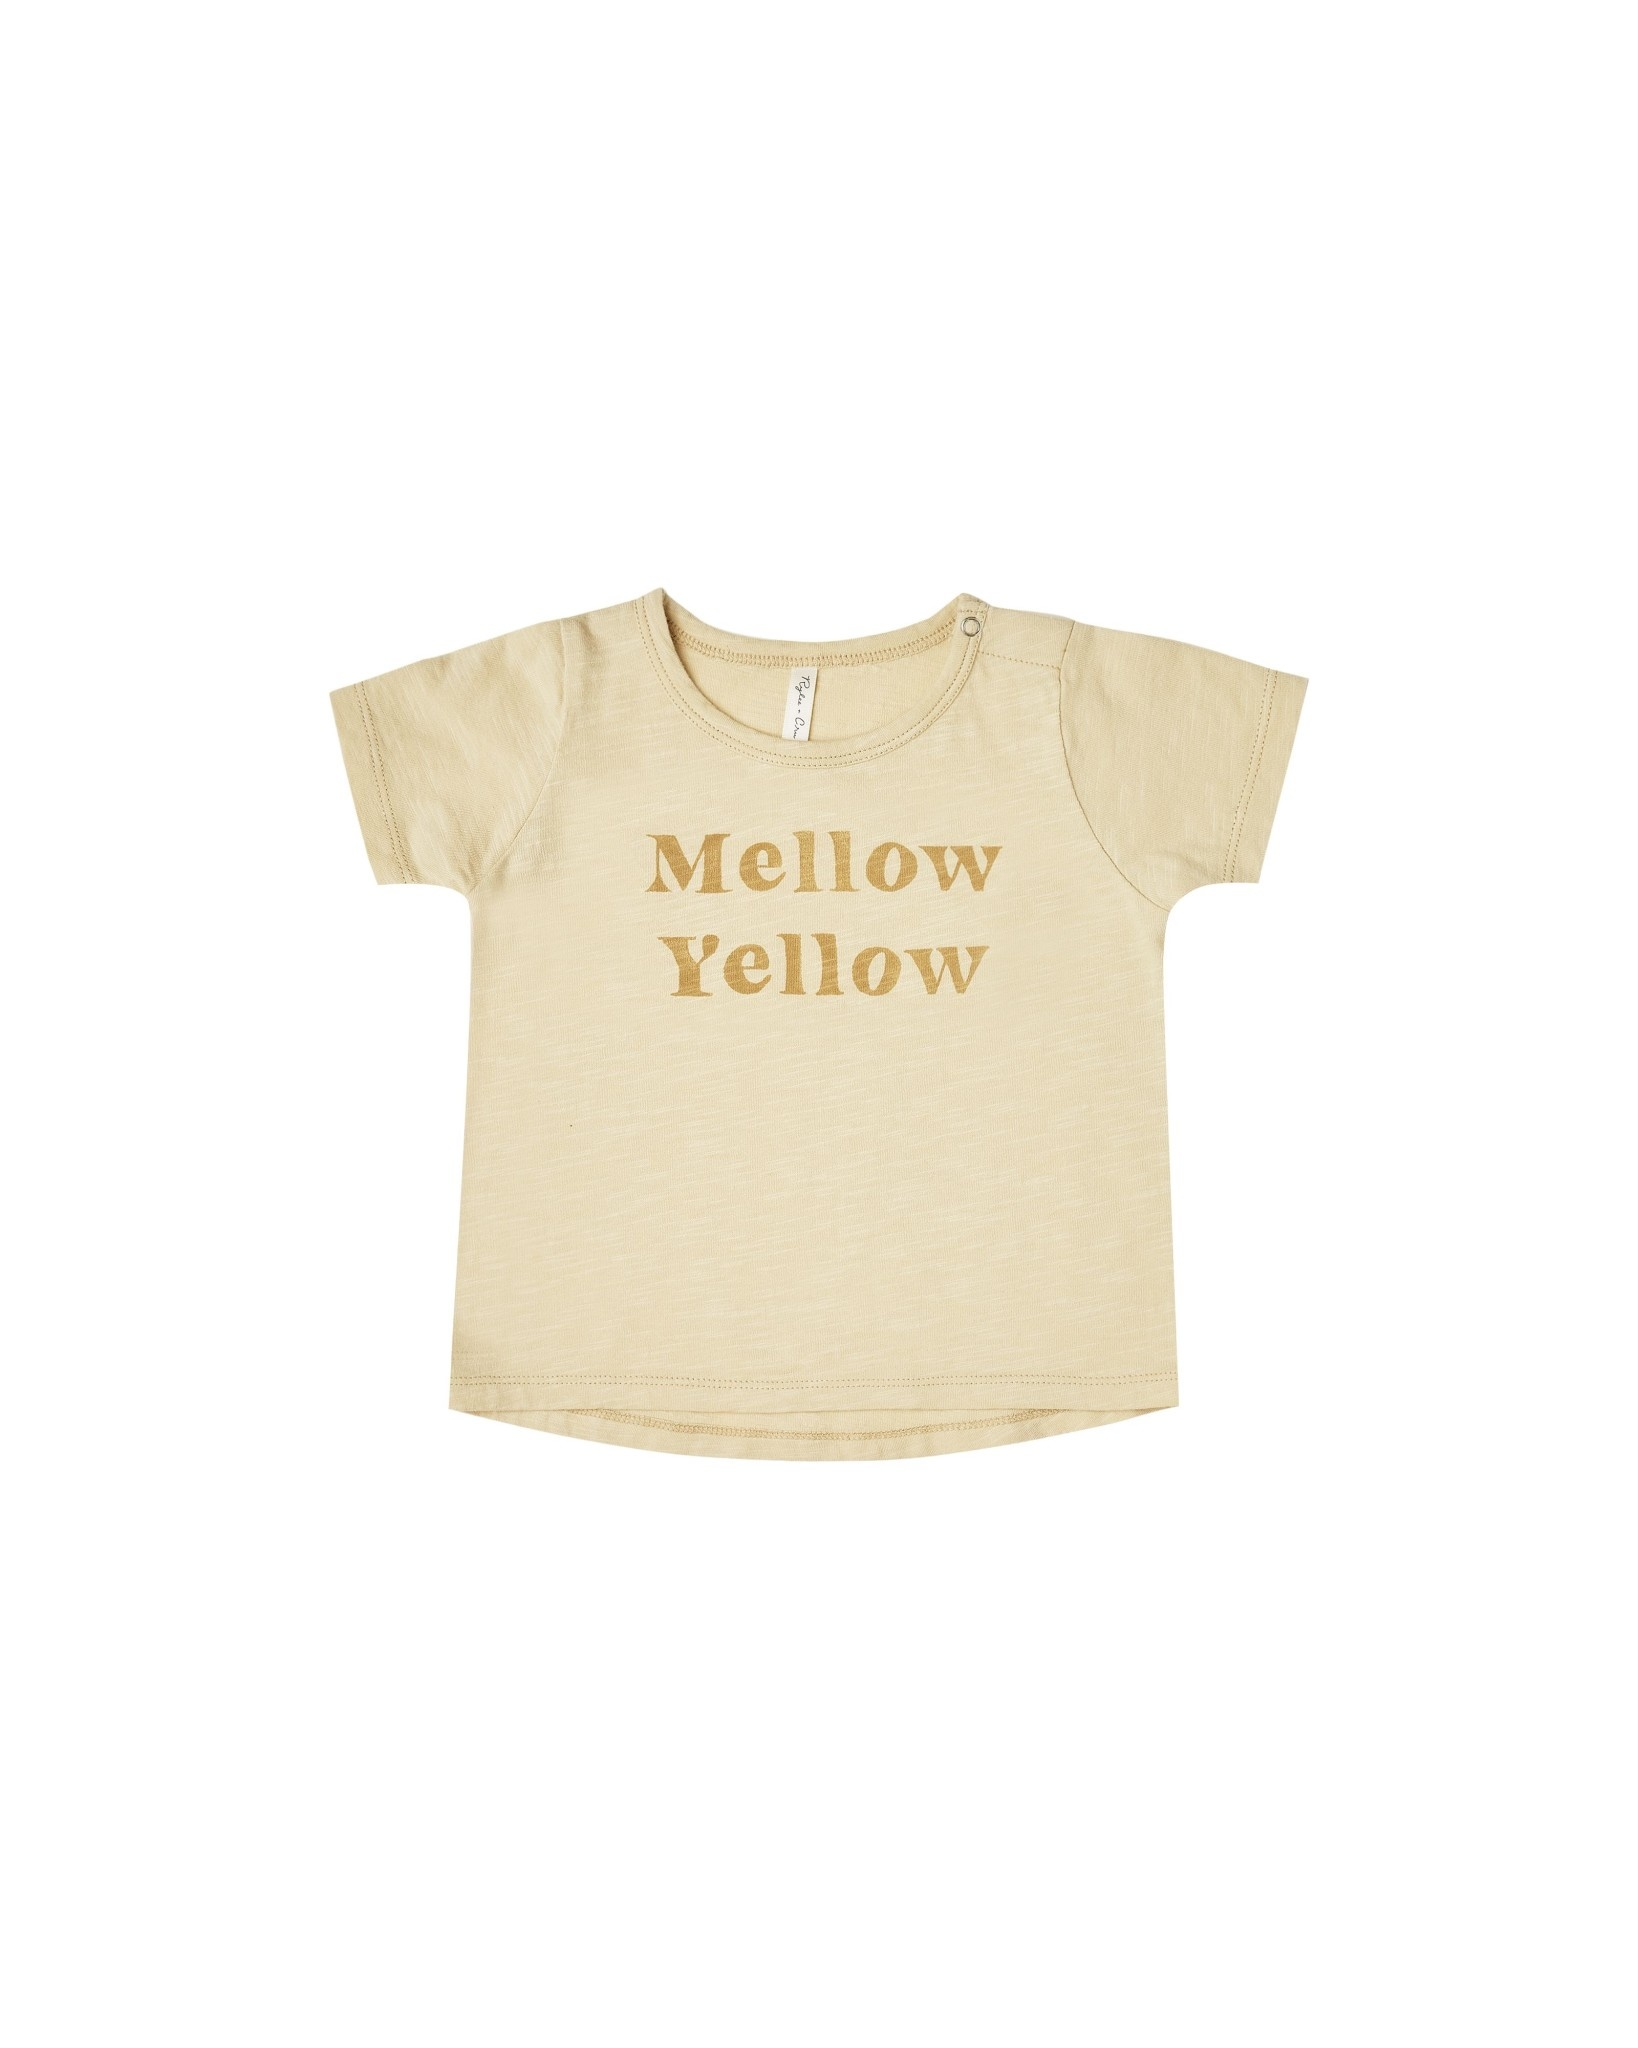 RYLEE AND CRU Mellow Yellow Tee